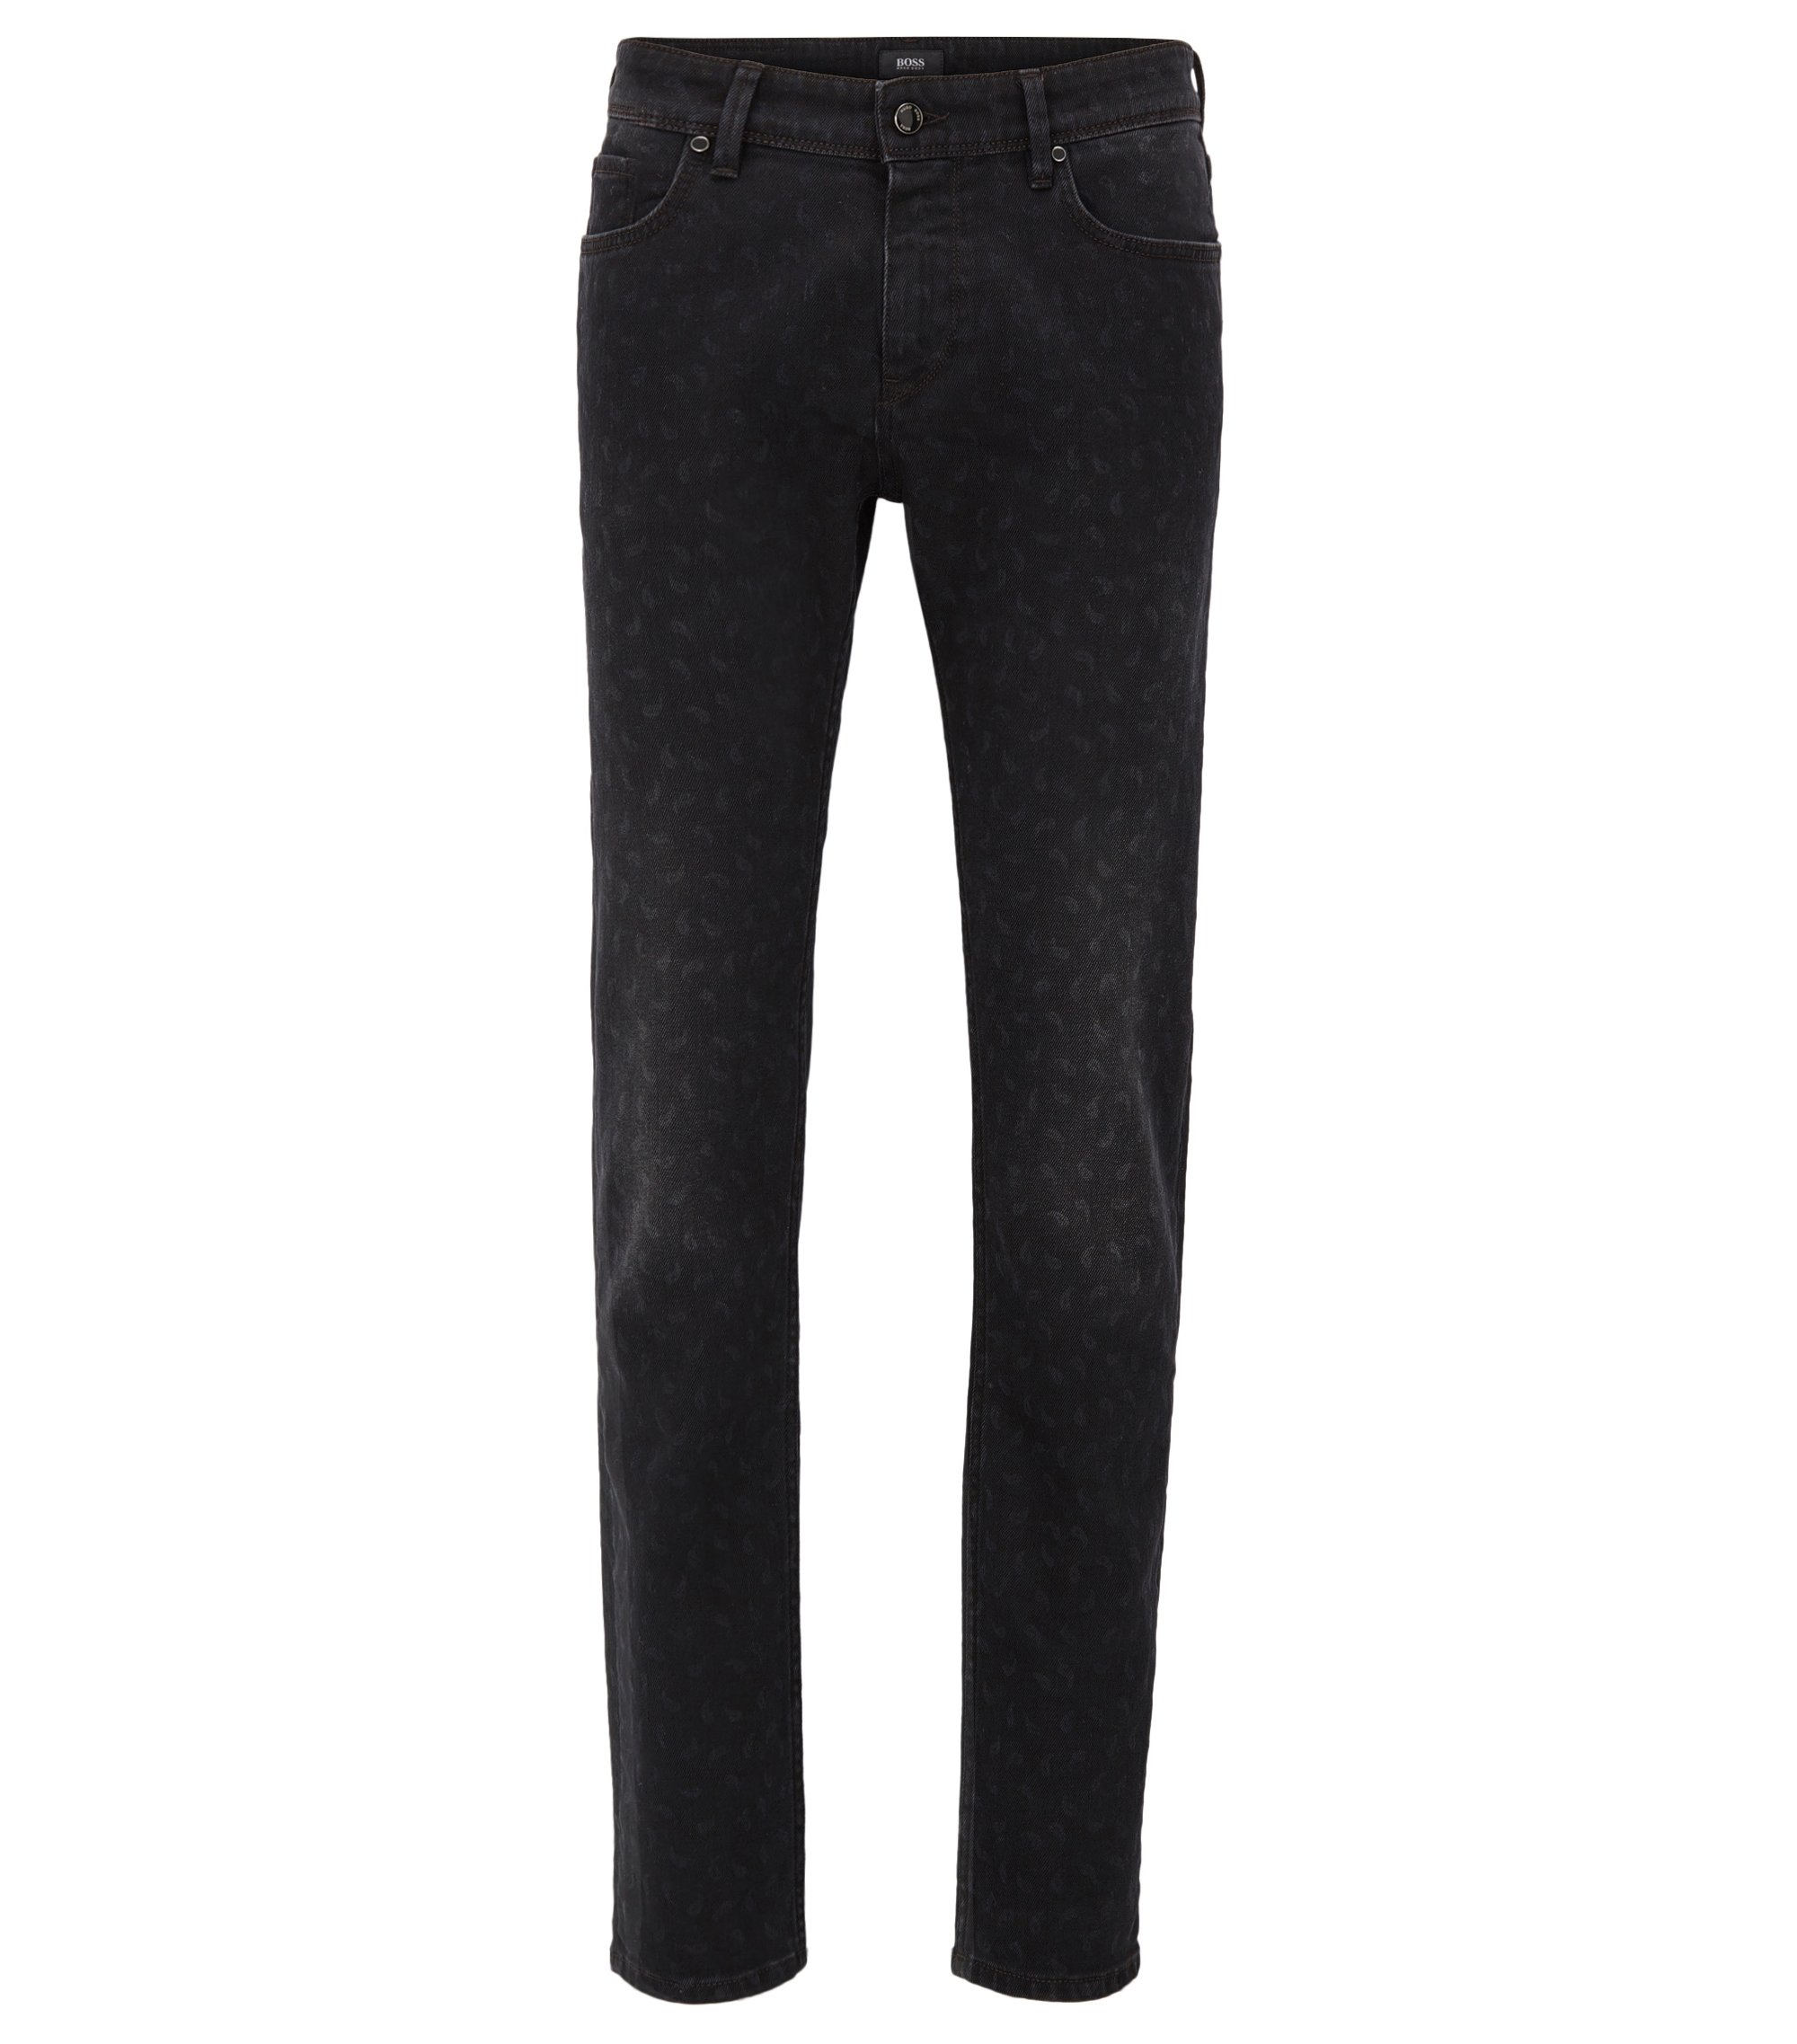 Stretch Cotton Jeans, Slim Fit | Charleston, Black